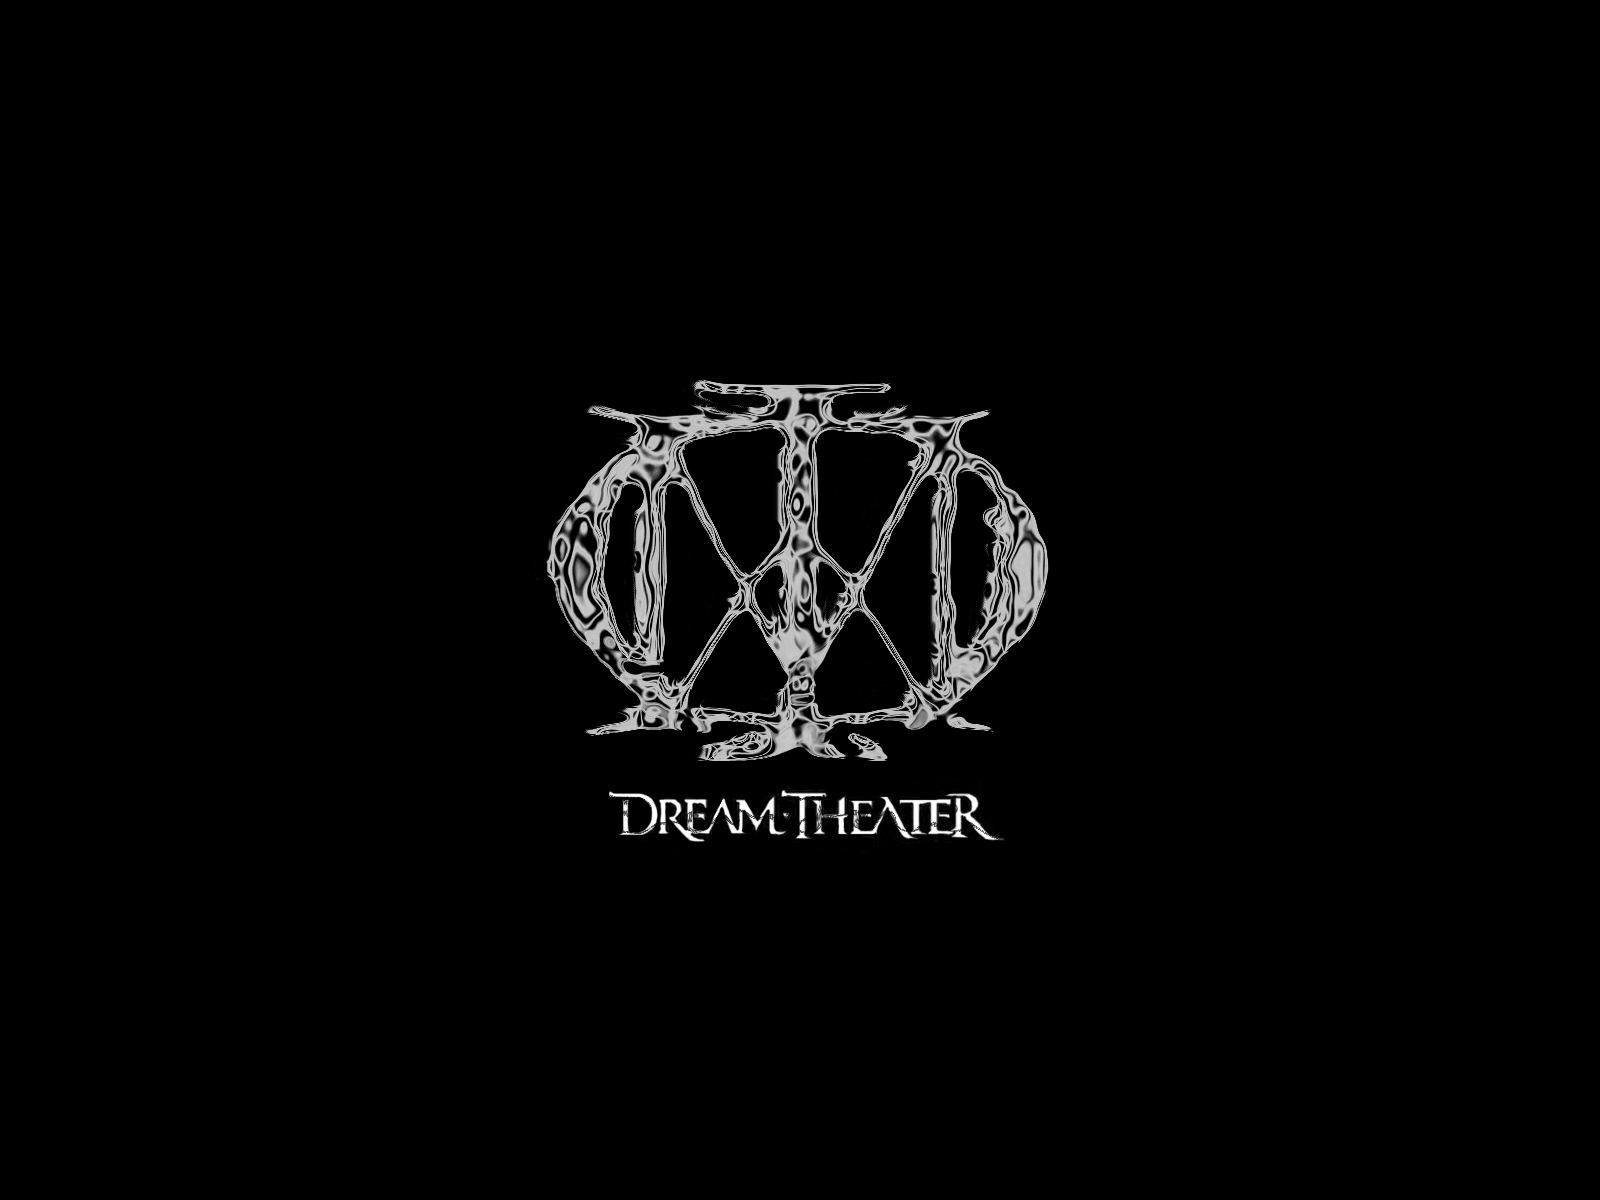 Dream Theater wallpaper ALL ABOUT MUSIC 1600x1200